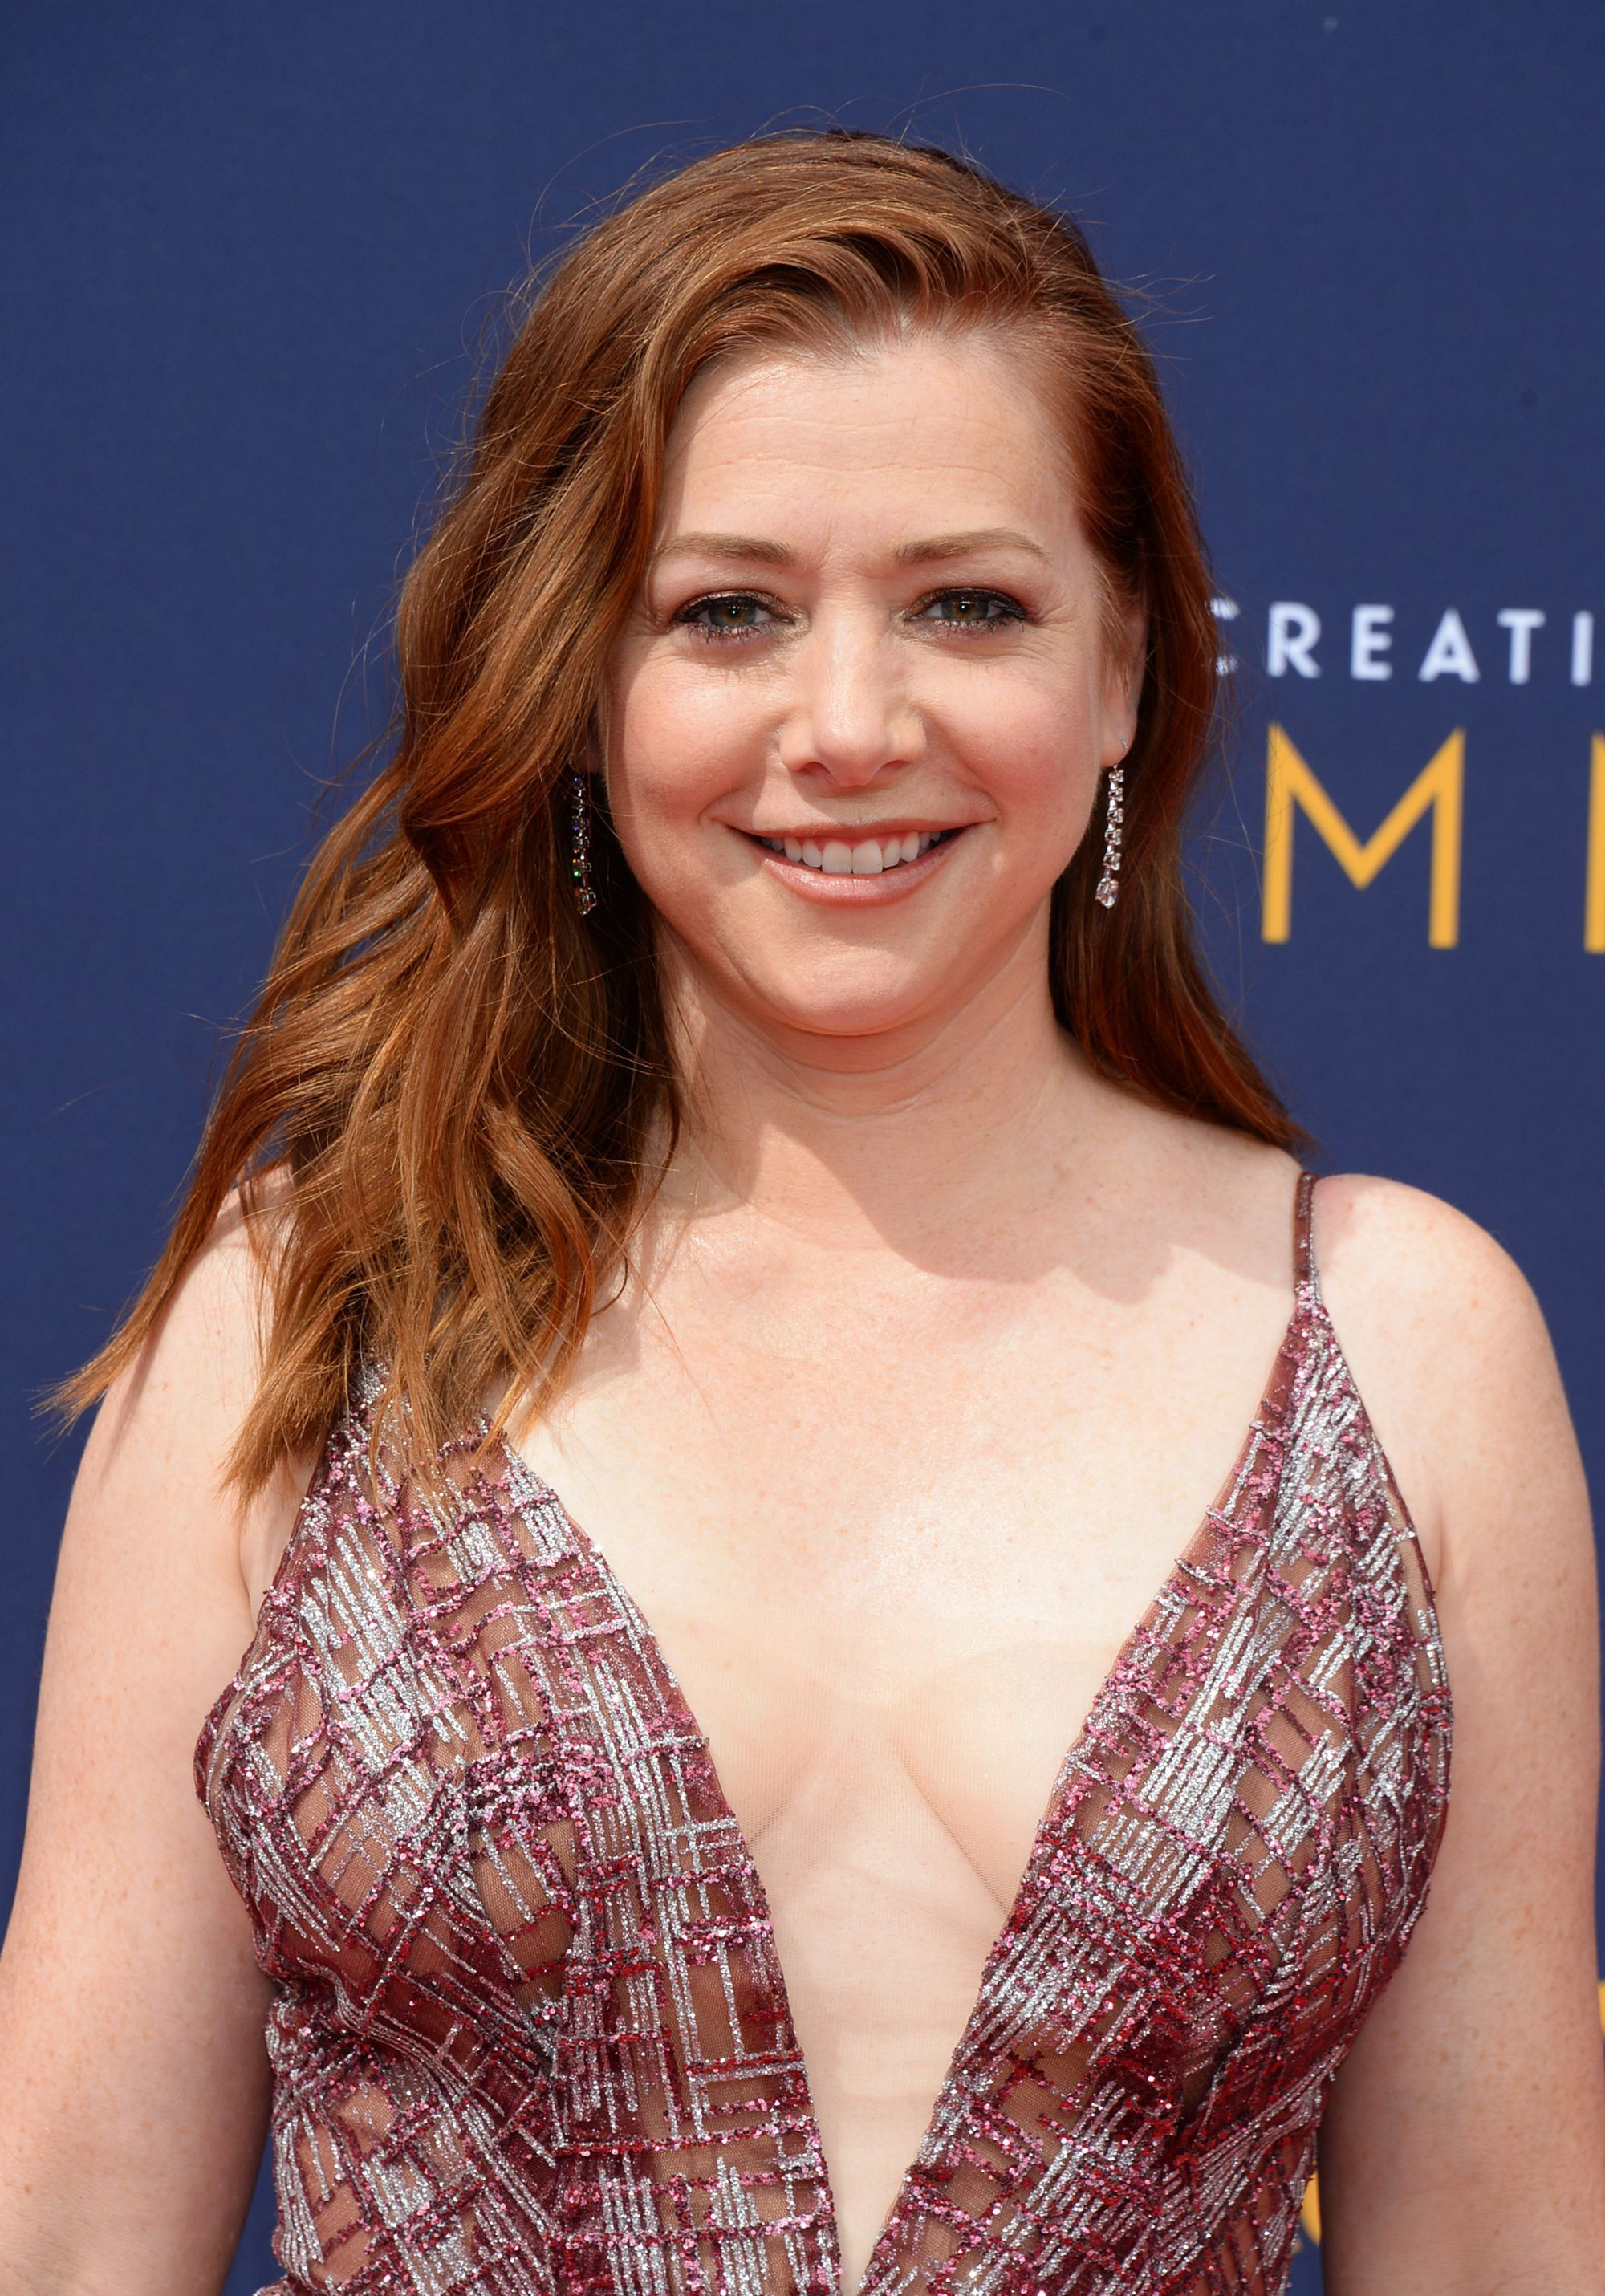 Alyson Hannigan Pokies stunning alyson hannigan photo and wallpaper - most